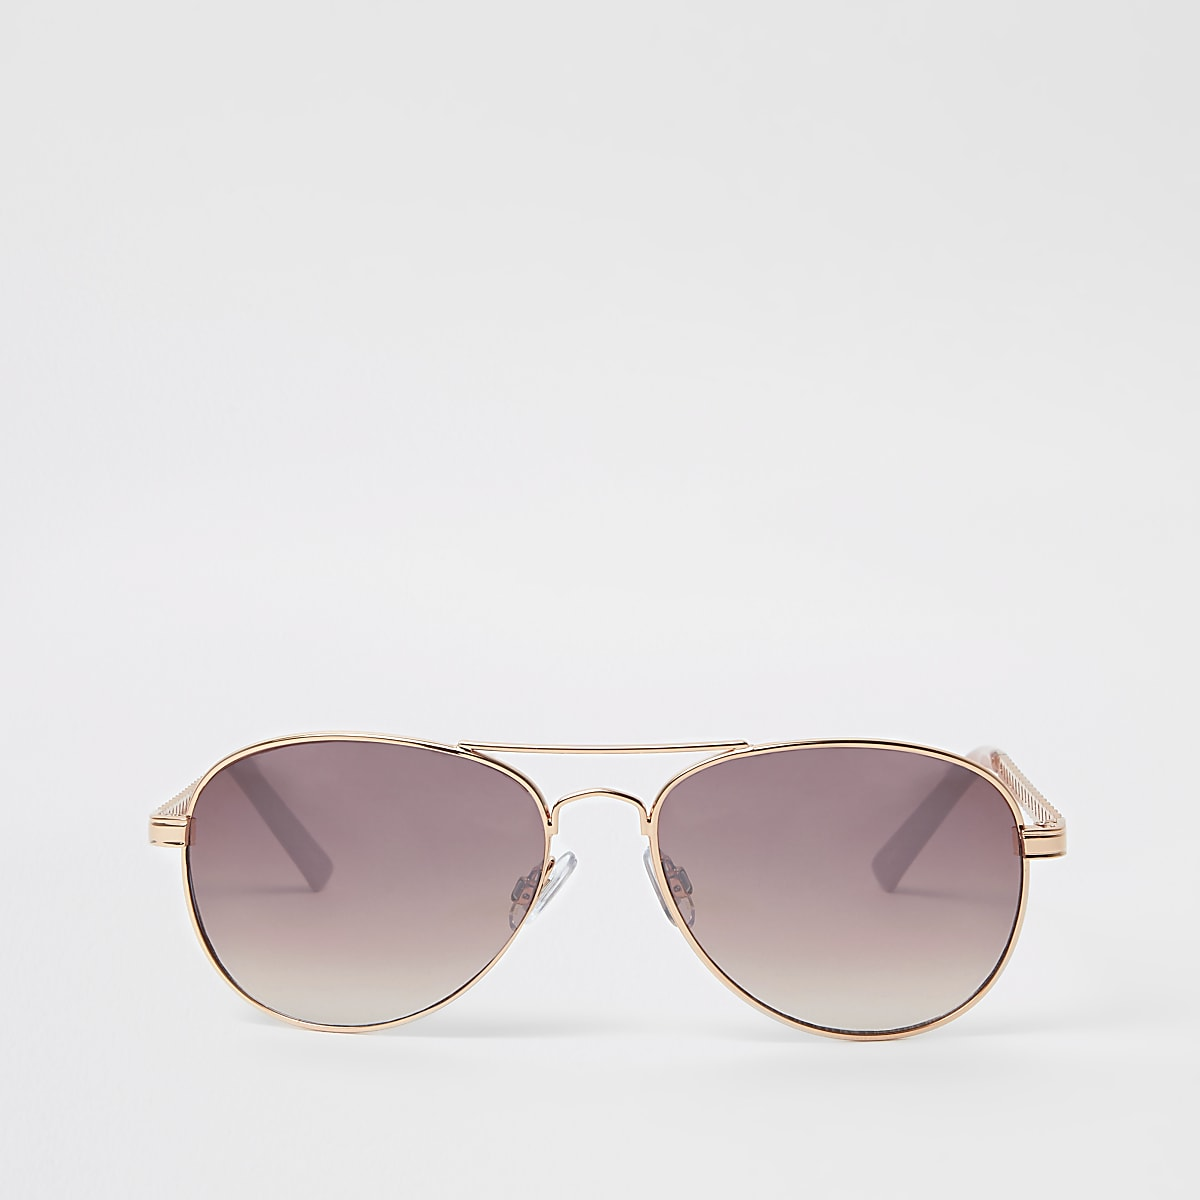 96a552b92 Rose gold pink lens chain aviator sunglasses - Aviator Sunglasses -  Sunglasses - women